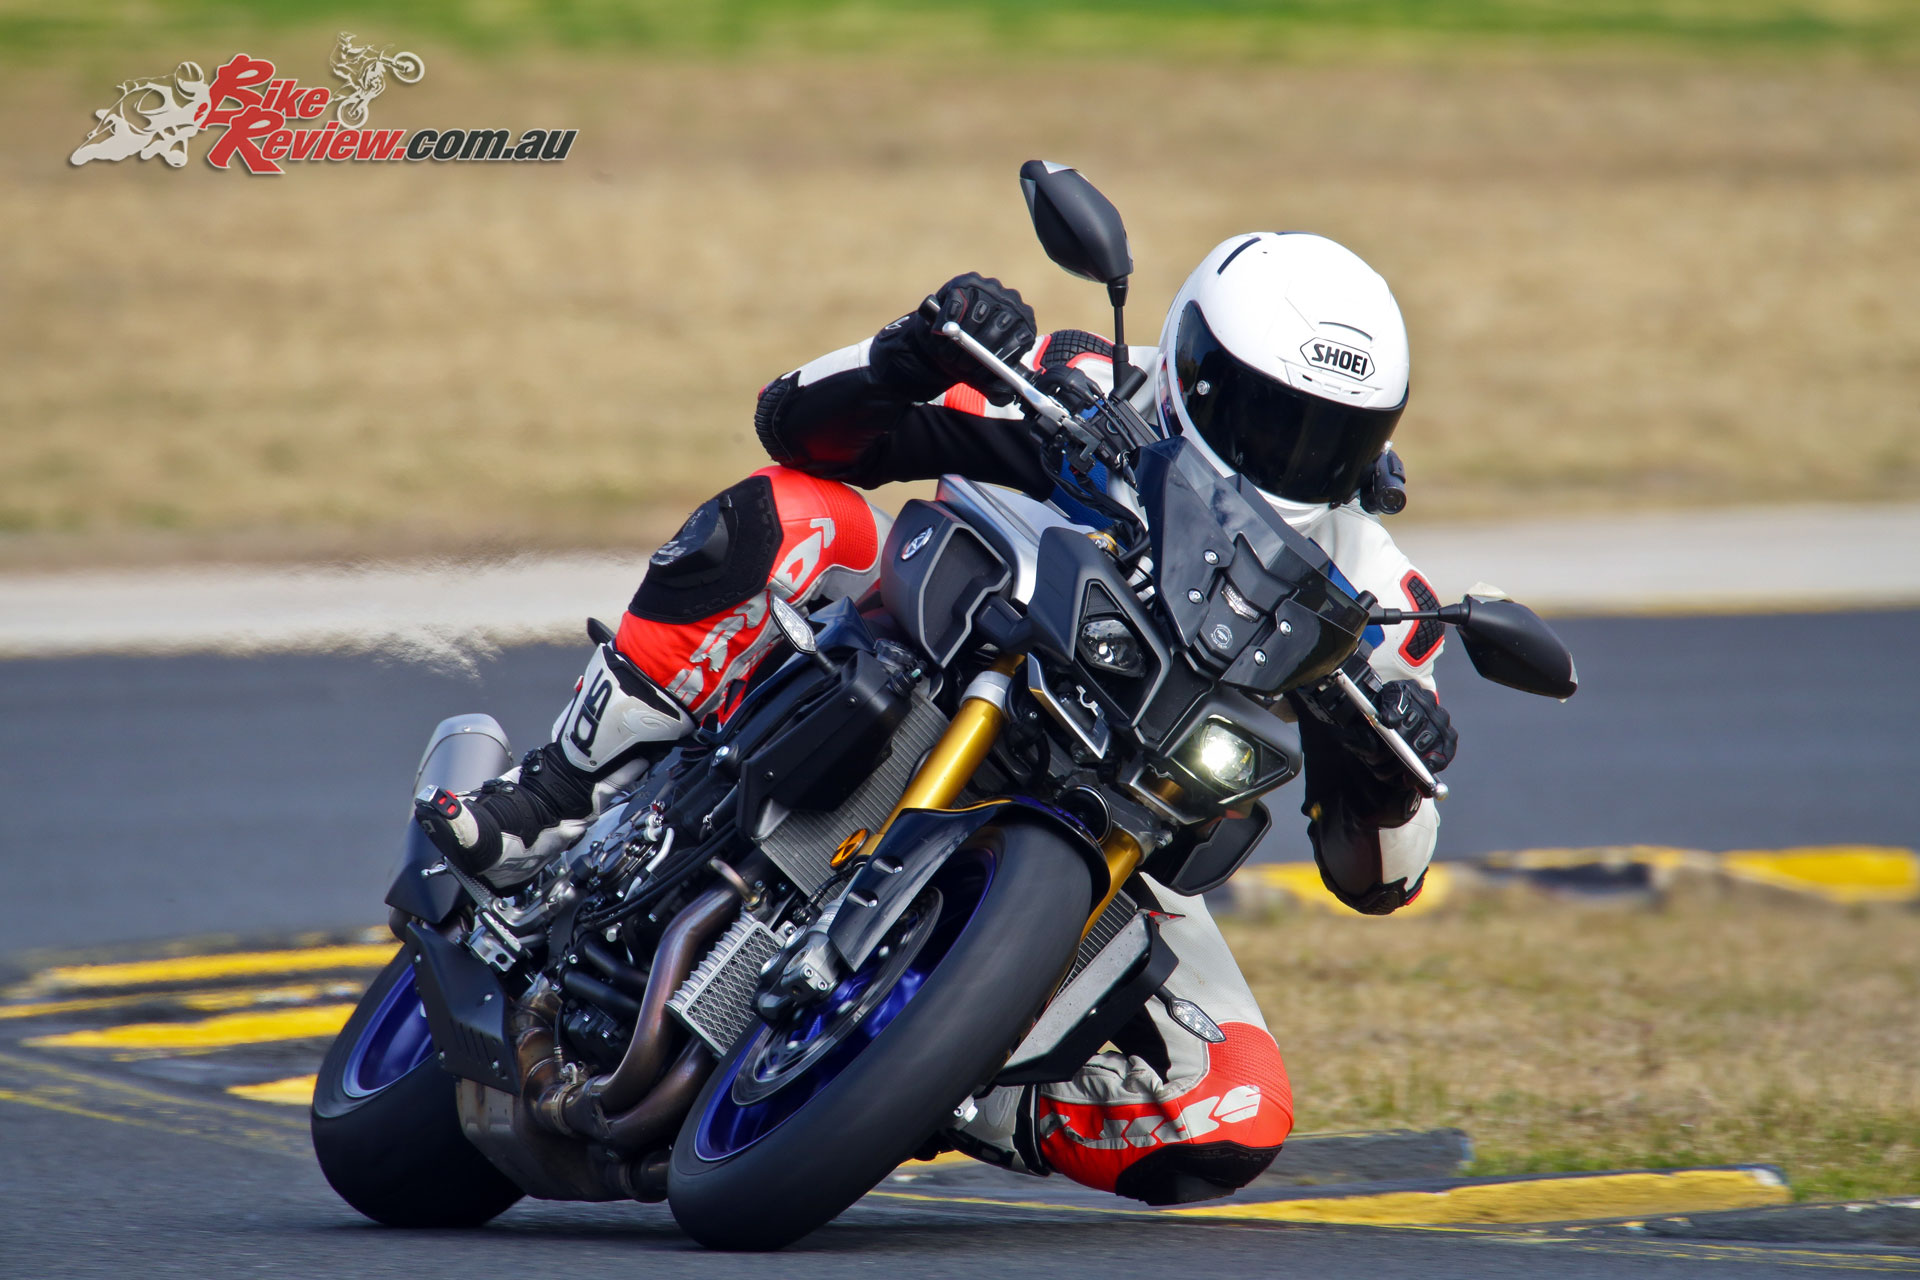 Jeff originally tested the MT-10 in 2016 when it was launched, and had the opportunity to ride the MT-10SP at Sydney Motorsport Park recently. he was impressed.